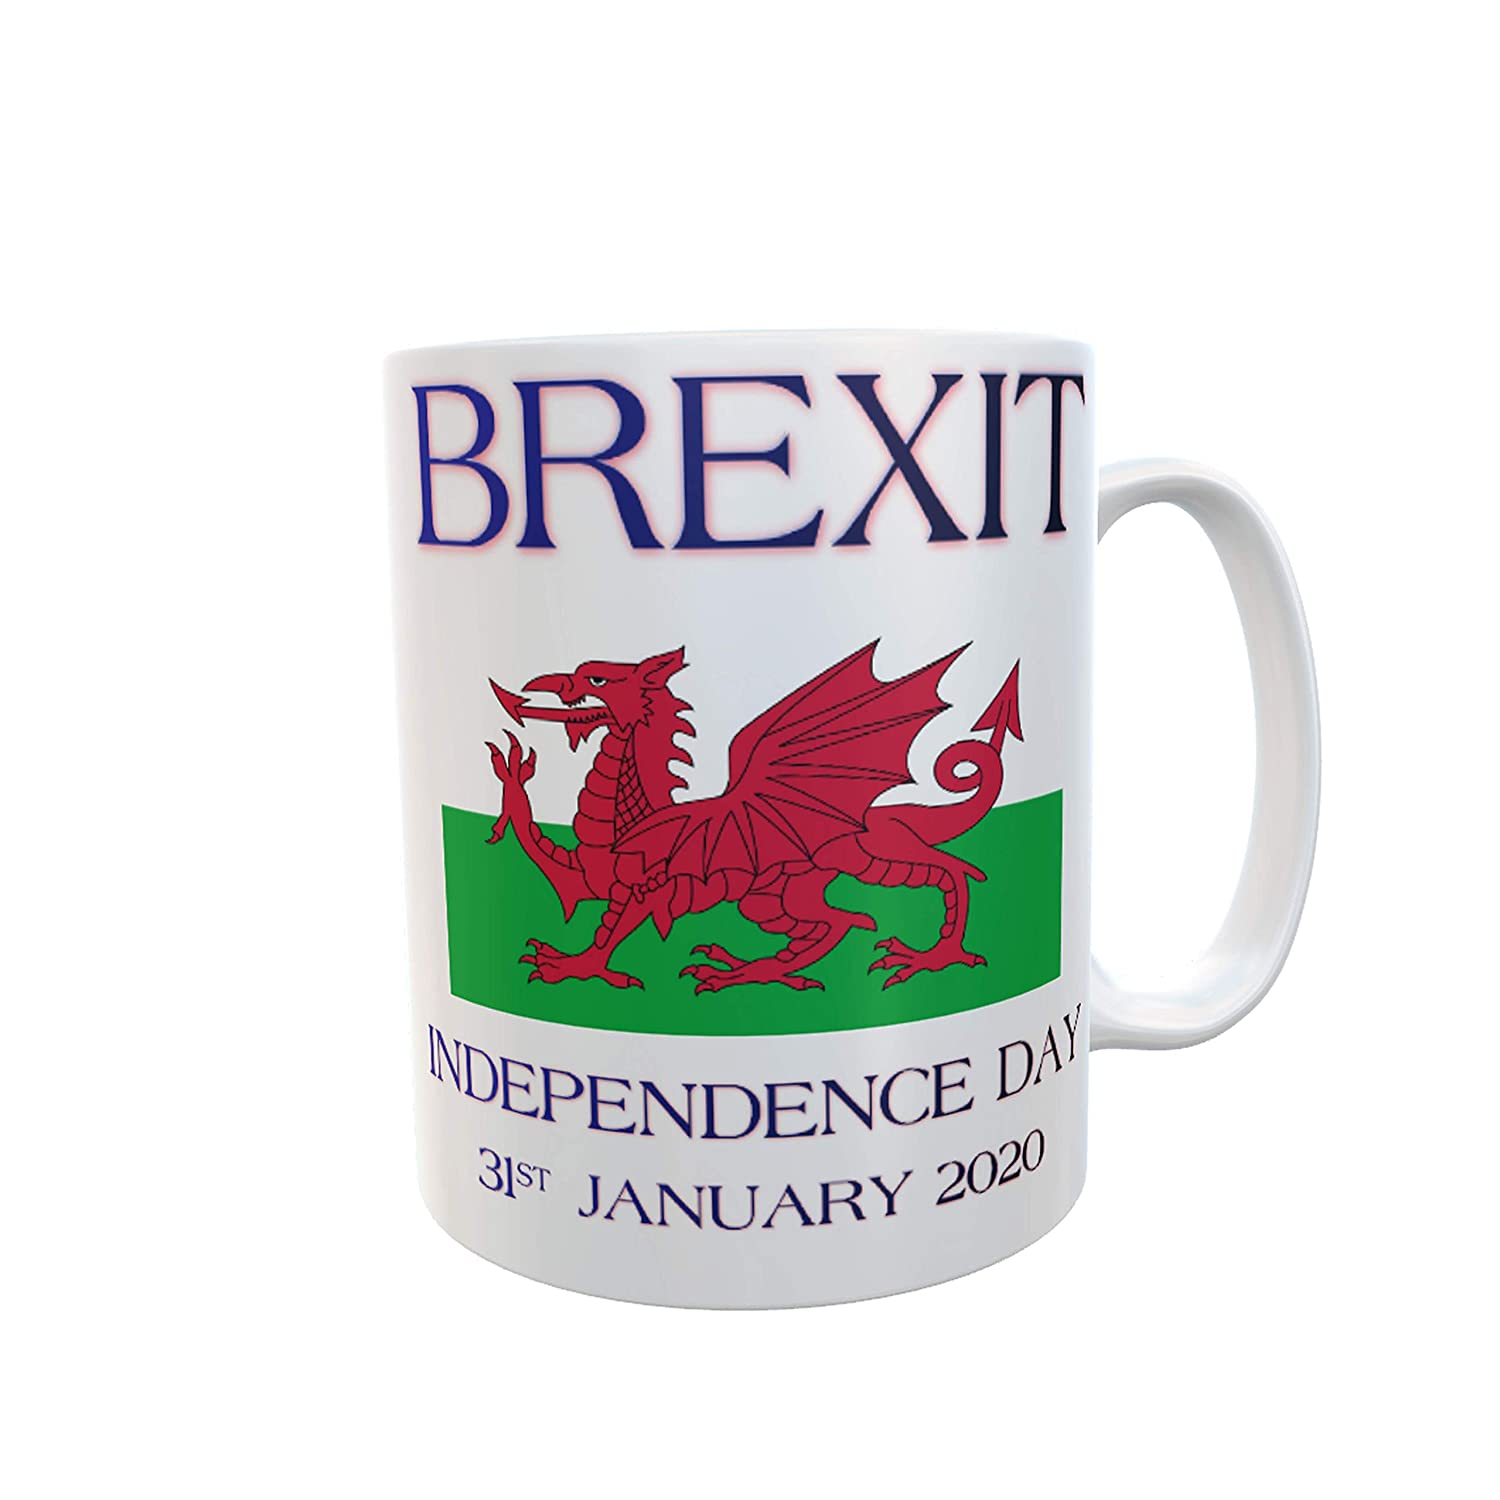 UK Independence Day Brexit Mug Wales Flag 31st January 2020 UKs Exit from the European Union Tea Coffee Mugs #Brexit